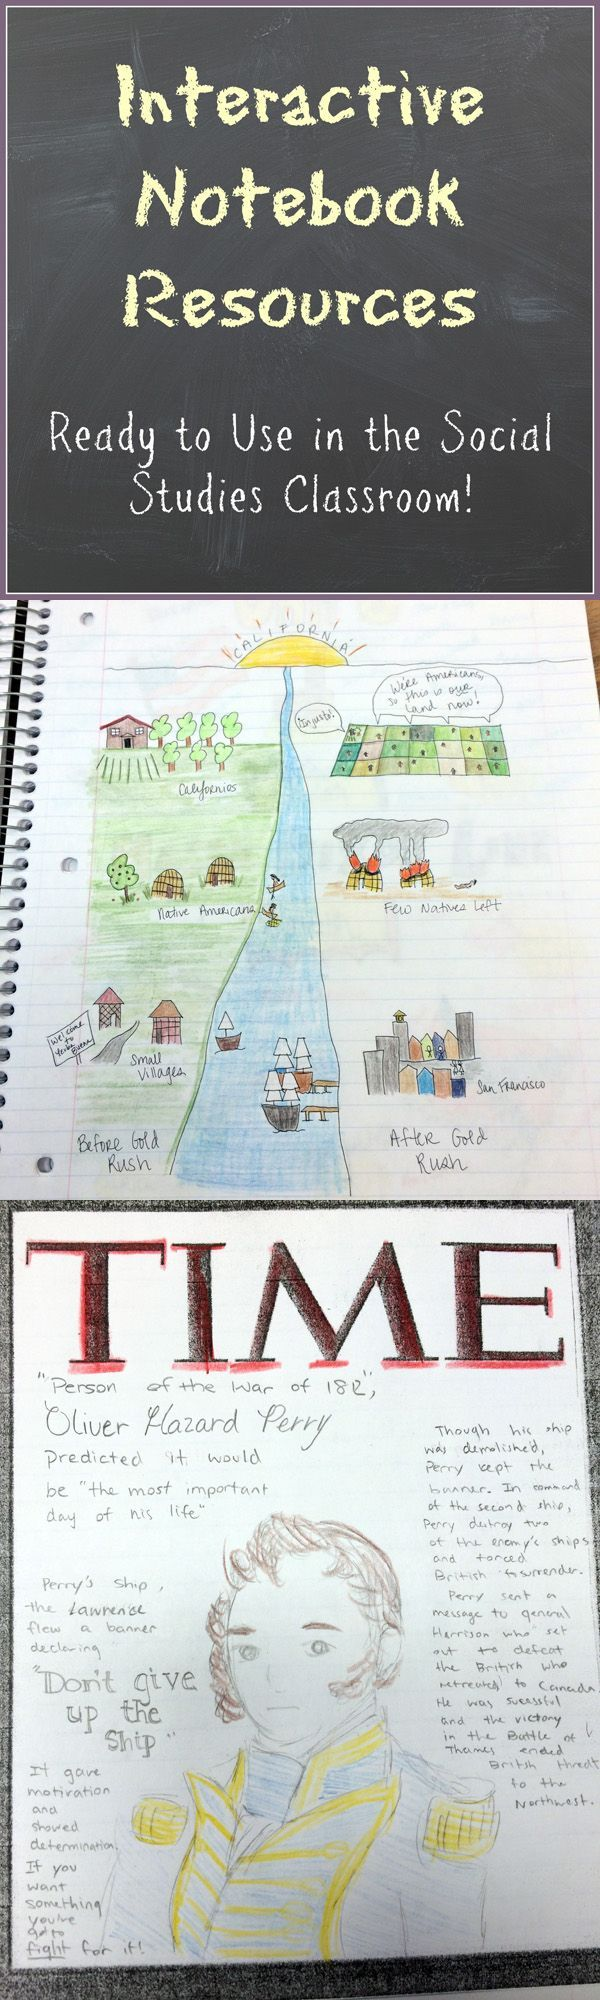 Interactive Notebook Resources ready to use in the middle school history/social studies middle classroom. There are so many benefits to using the interactive notebook at the middle school level. Comprehension and retention are increased, students learn key concepts in multiple ways, and creativity and higher-level thinking are incorporated on a daily basis.